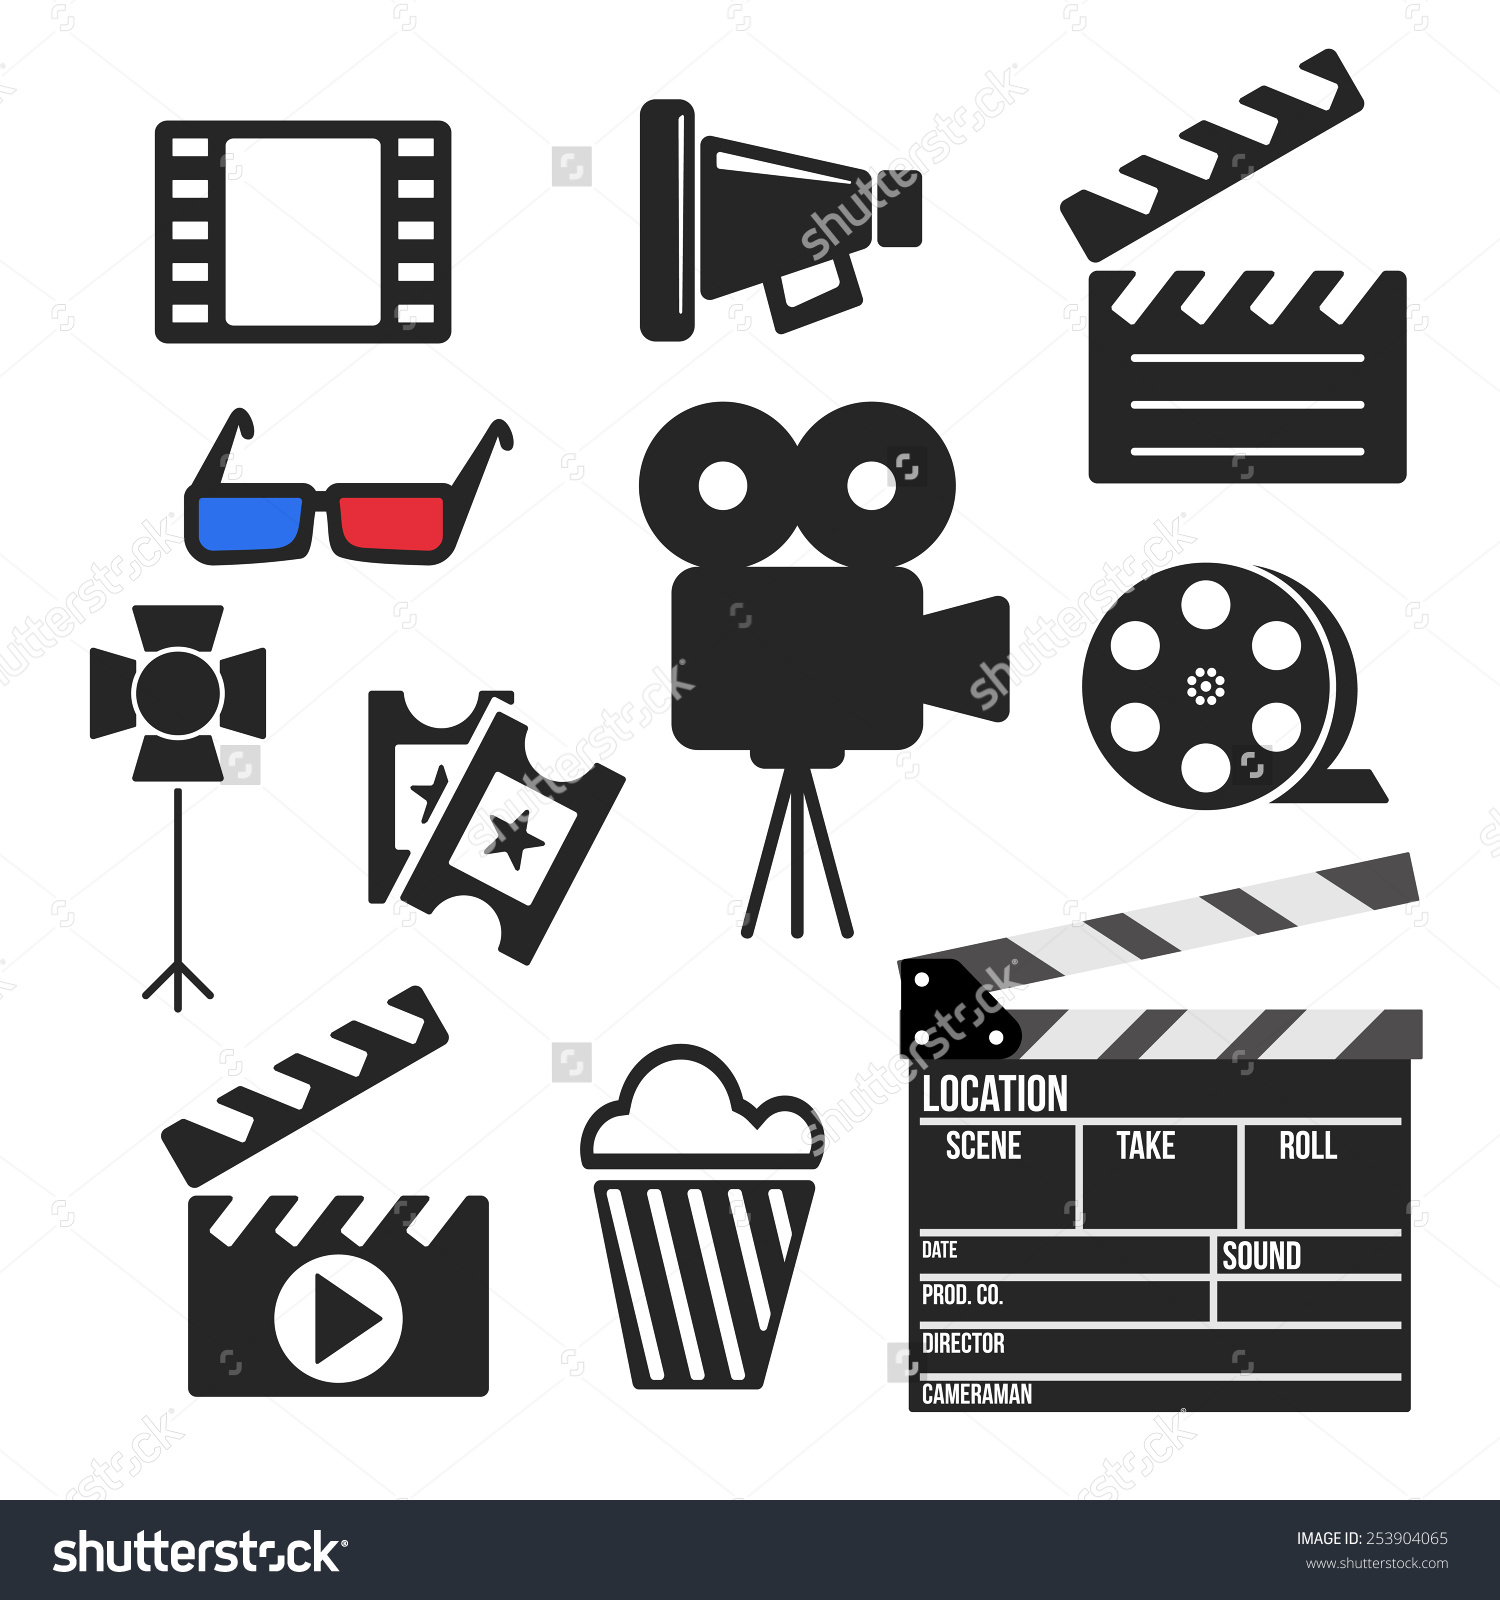 video production clipart - Clipground for Camera Equipment Clipart  575lpg